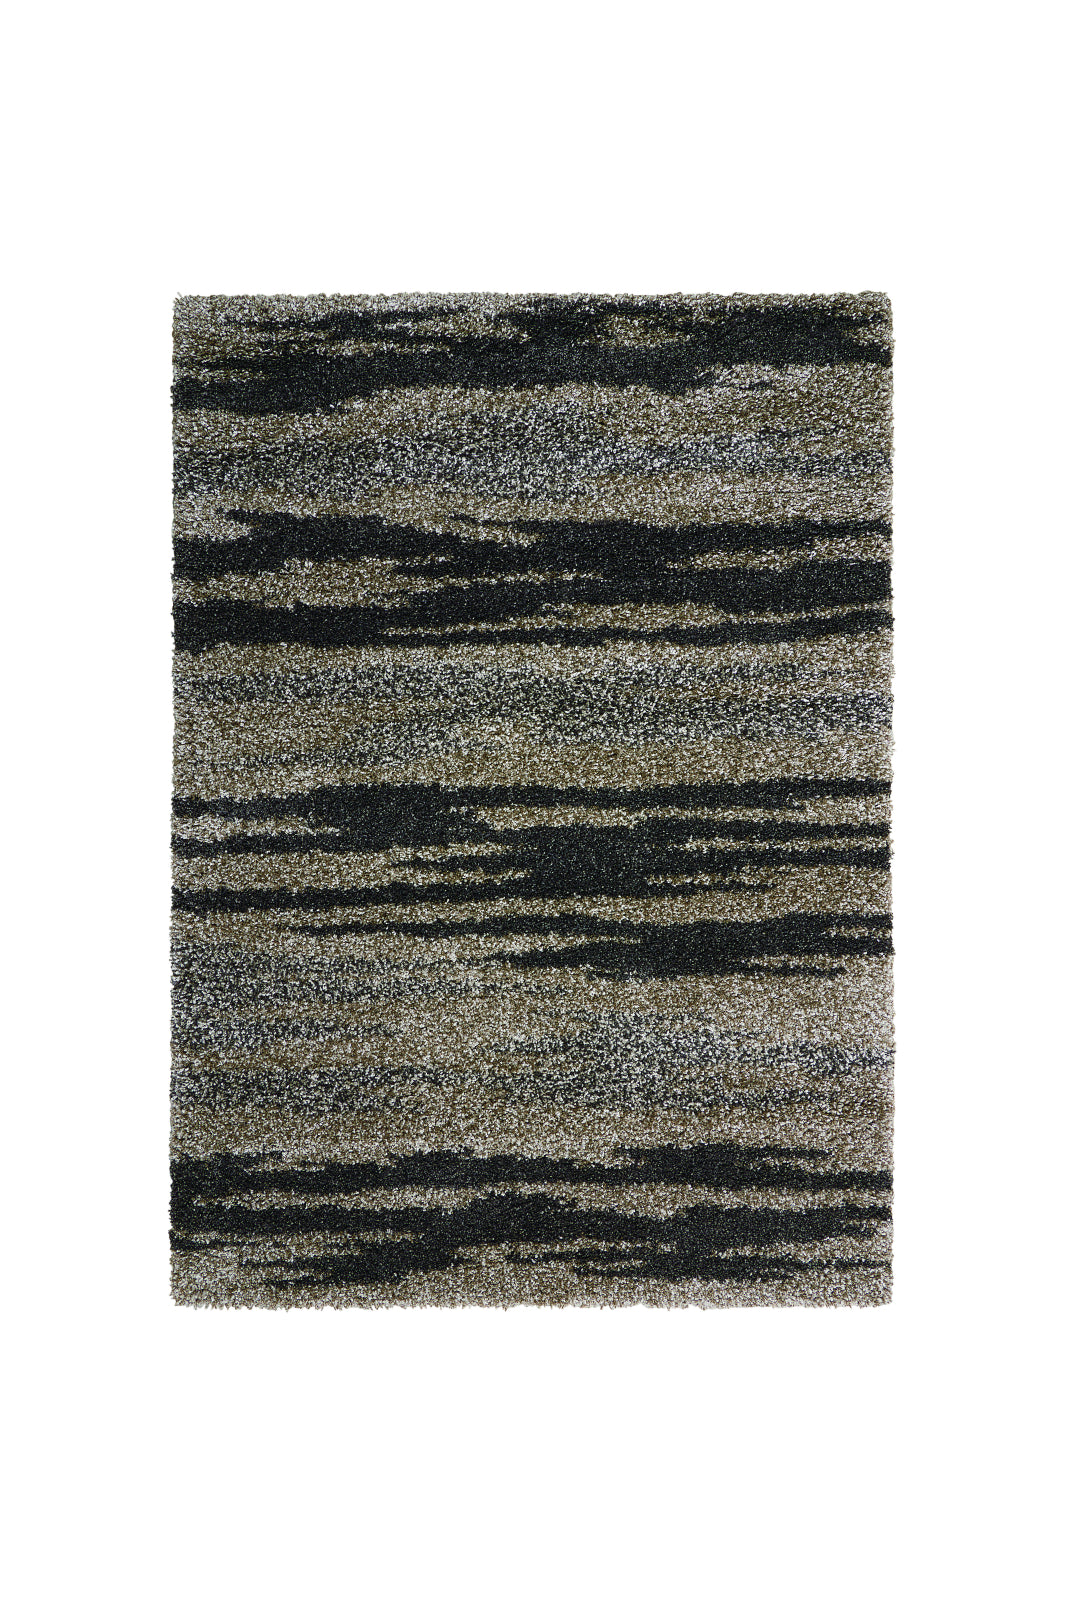 Nourison Amore AMOR3 Marble Area Rug main image